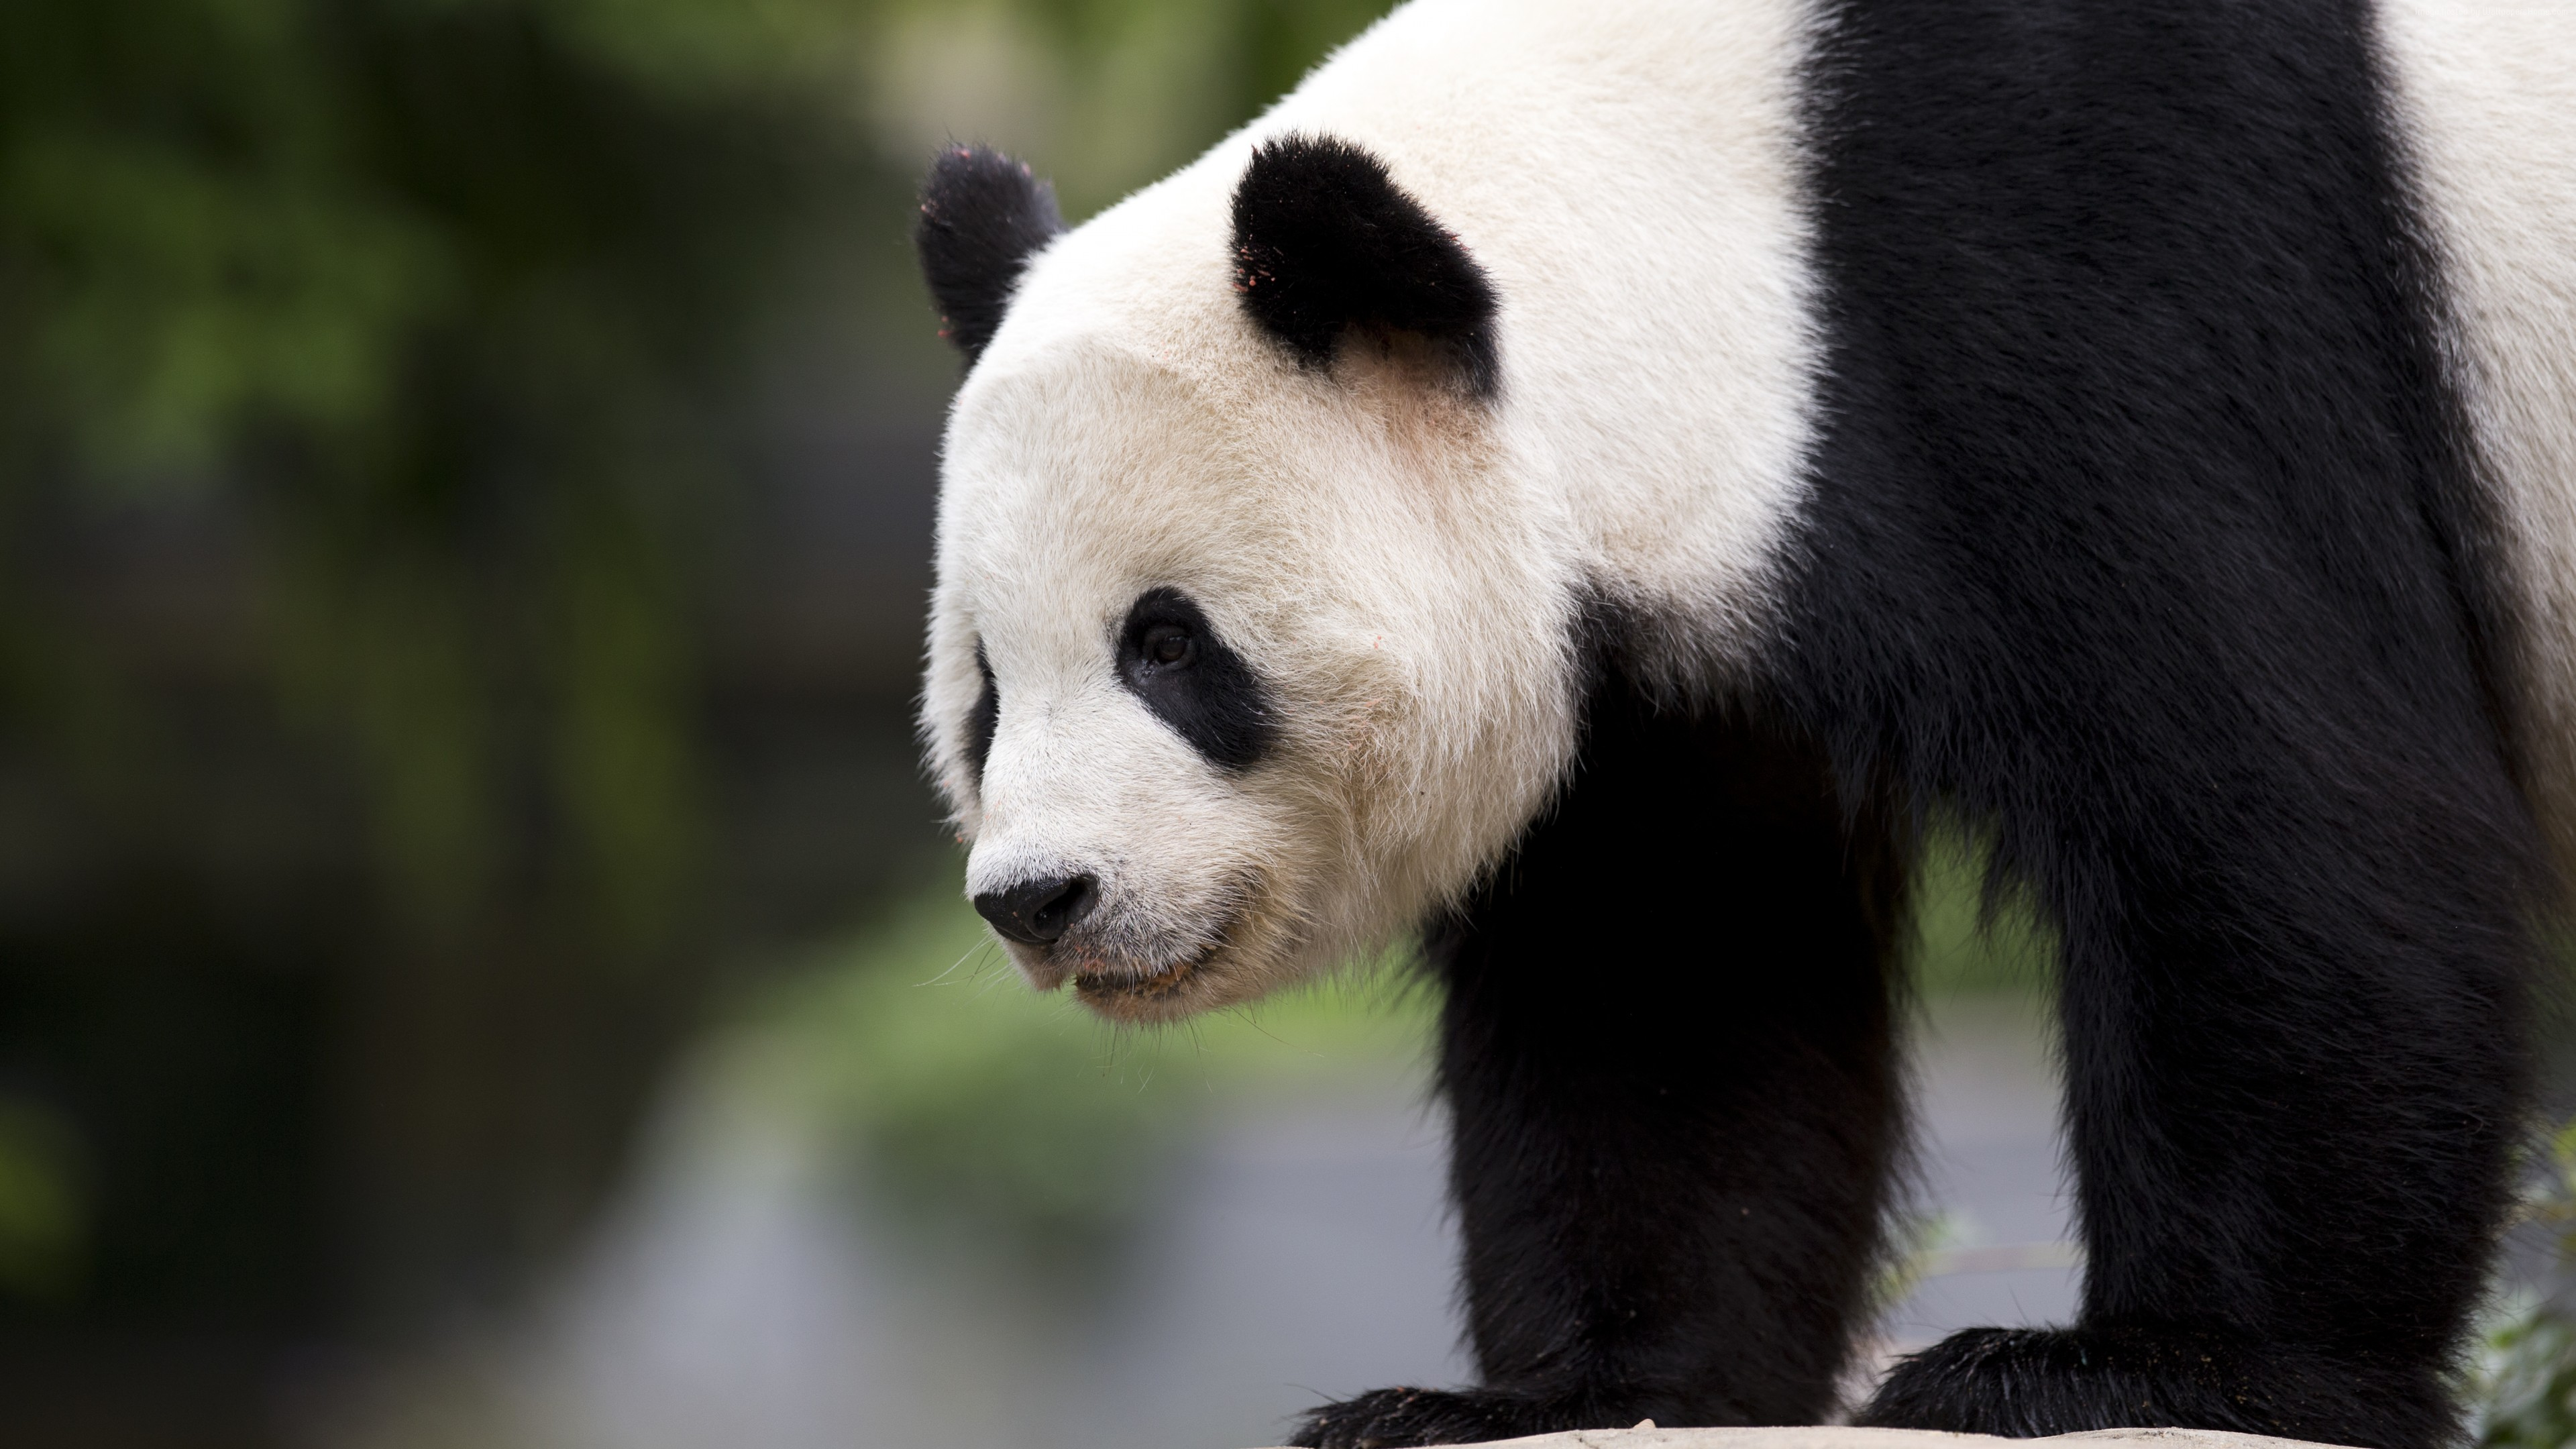 Stock Images panda, cute animals, 6k, Stock Images